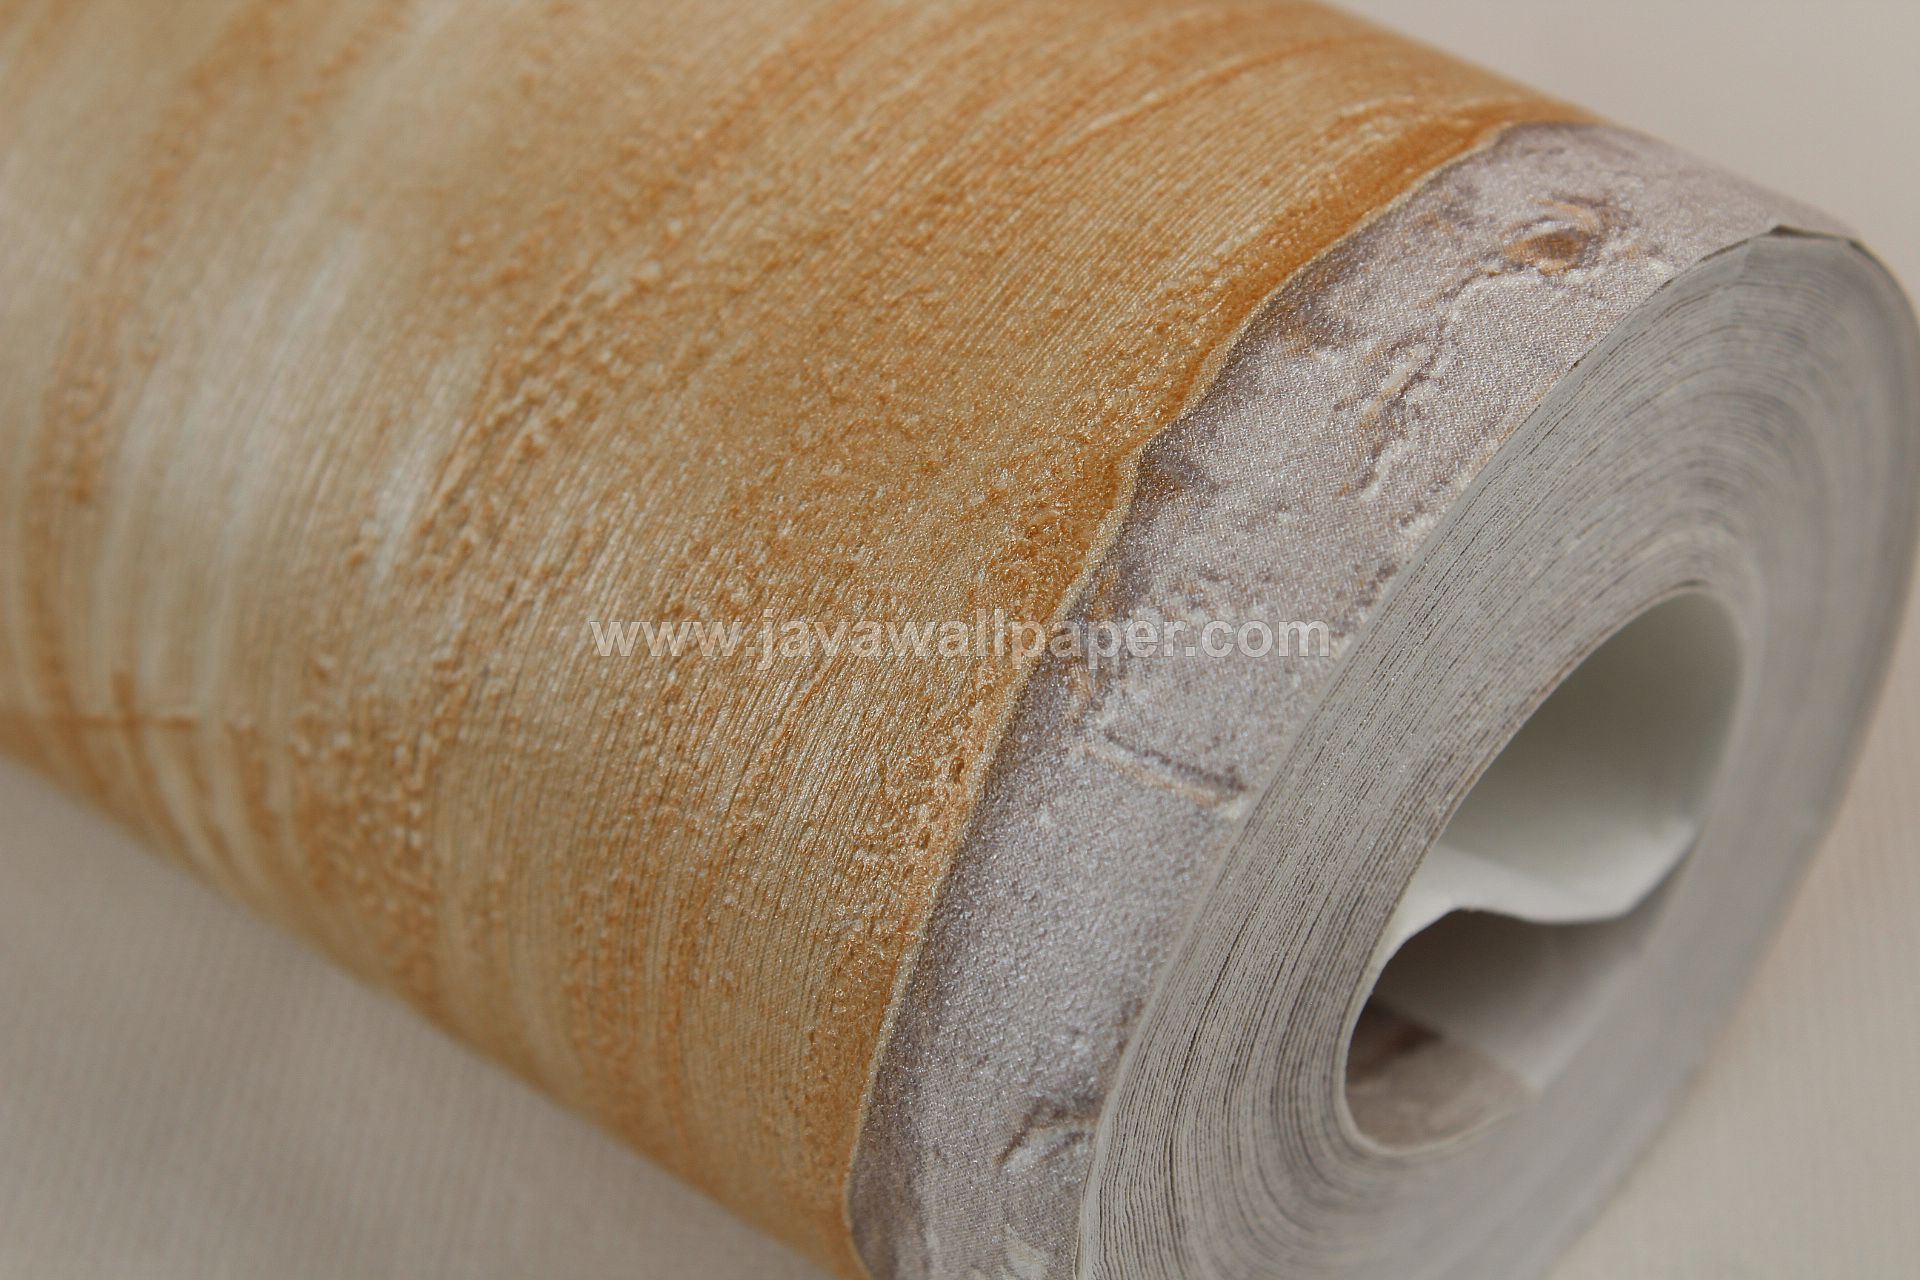 Wallpaper Dinding Kayu Coklat RO150 - Java Wallpaper